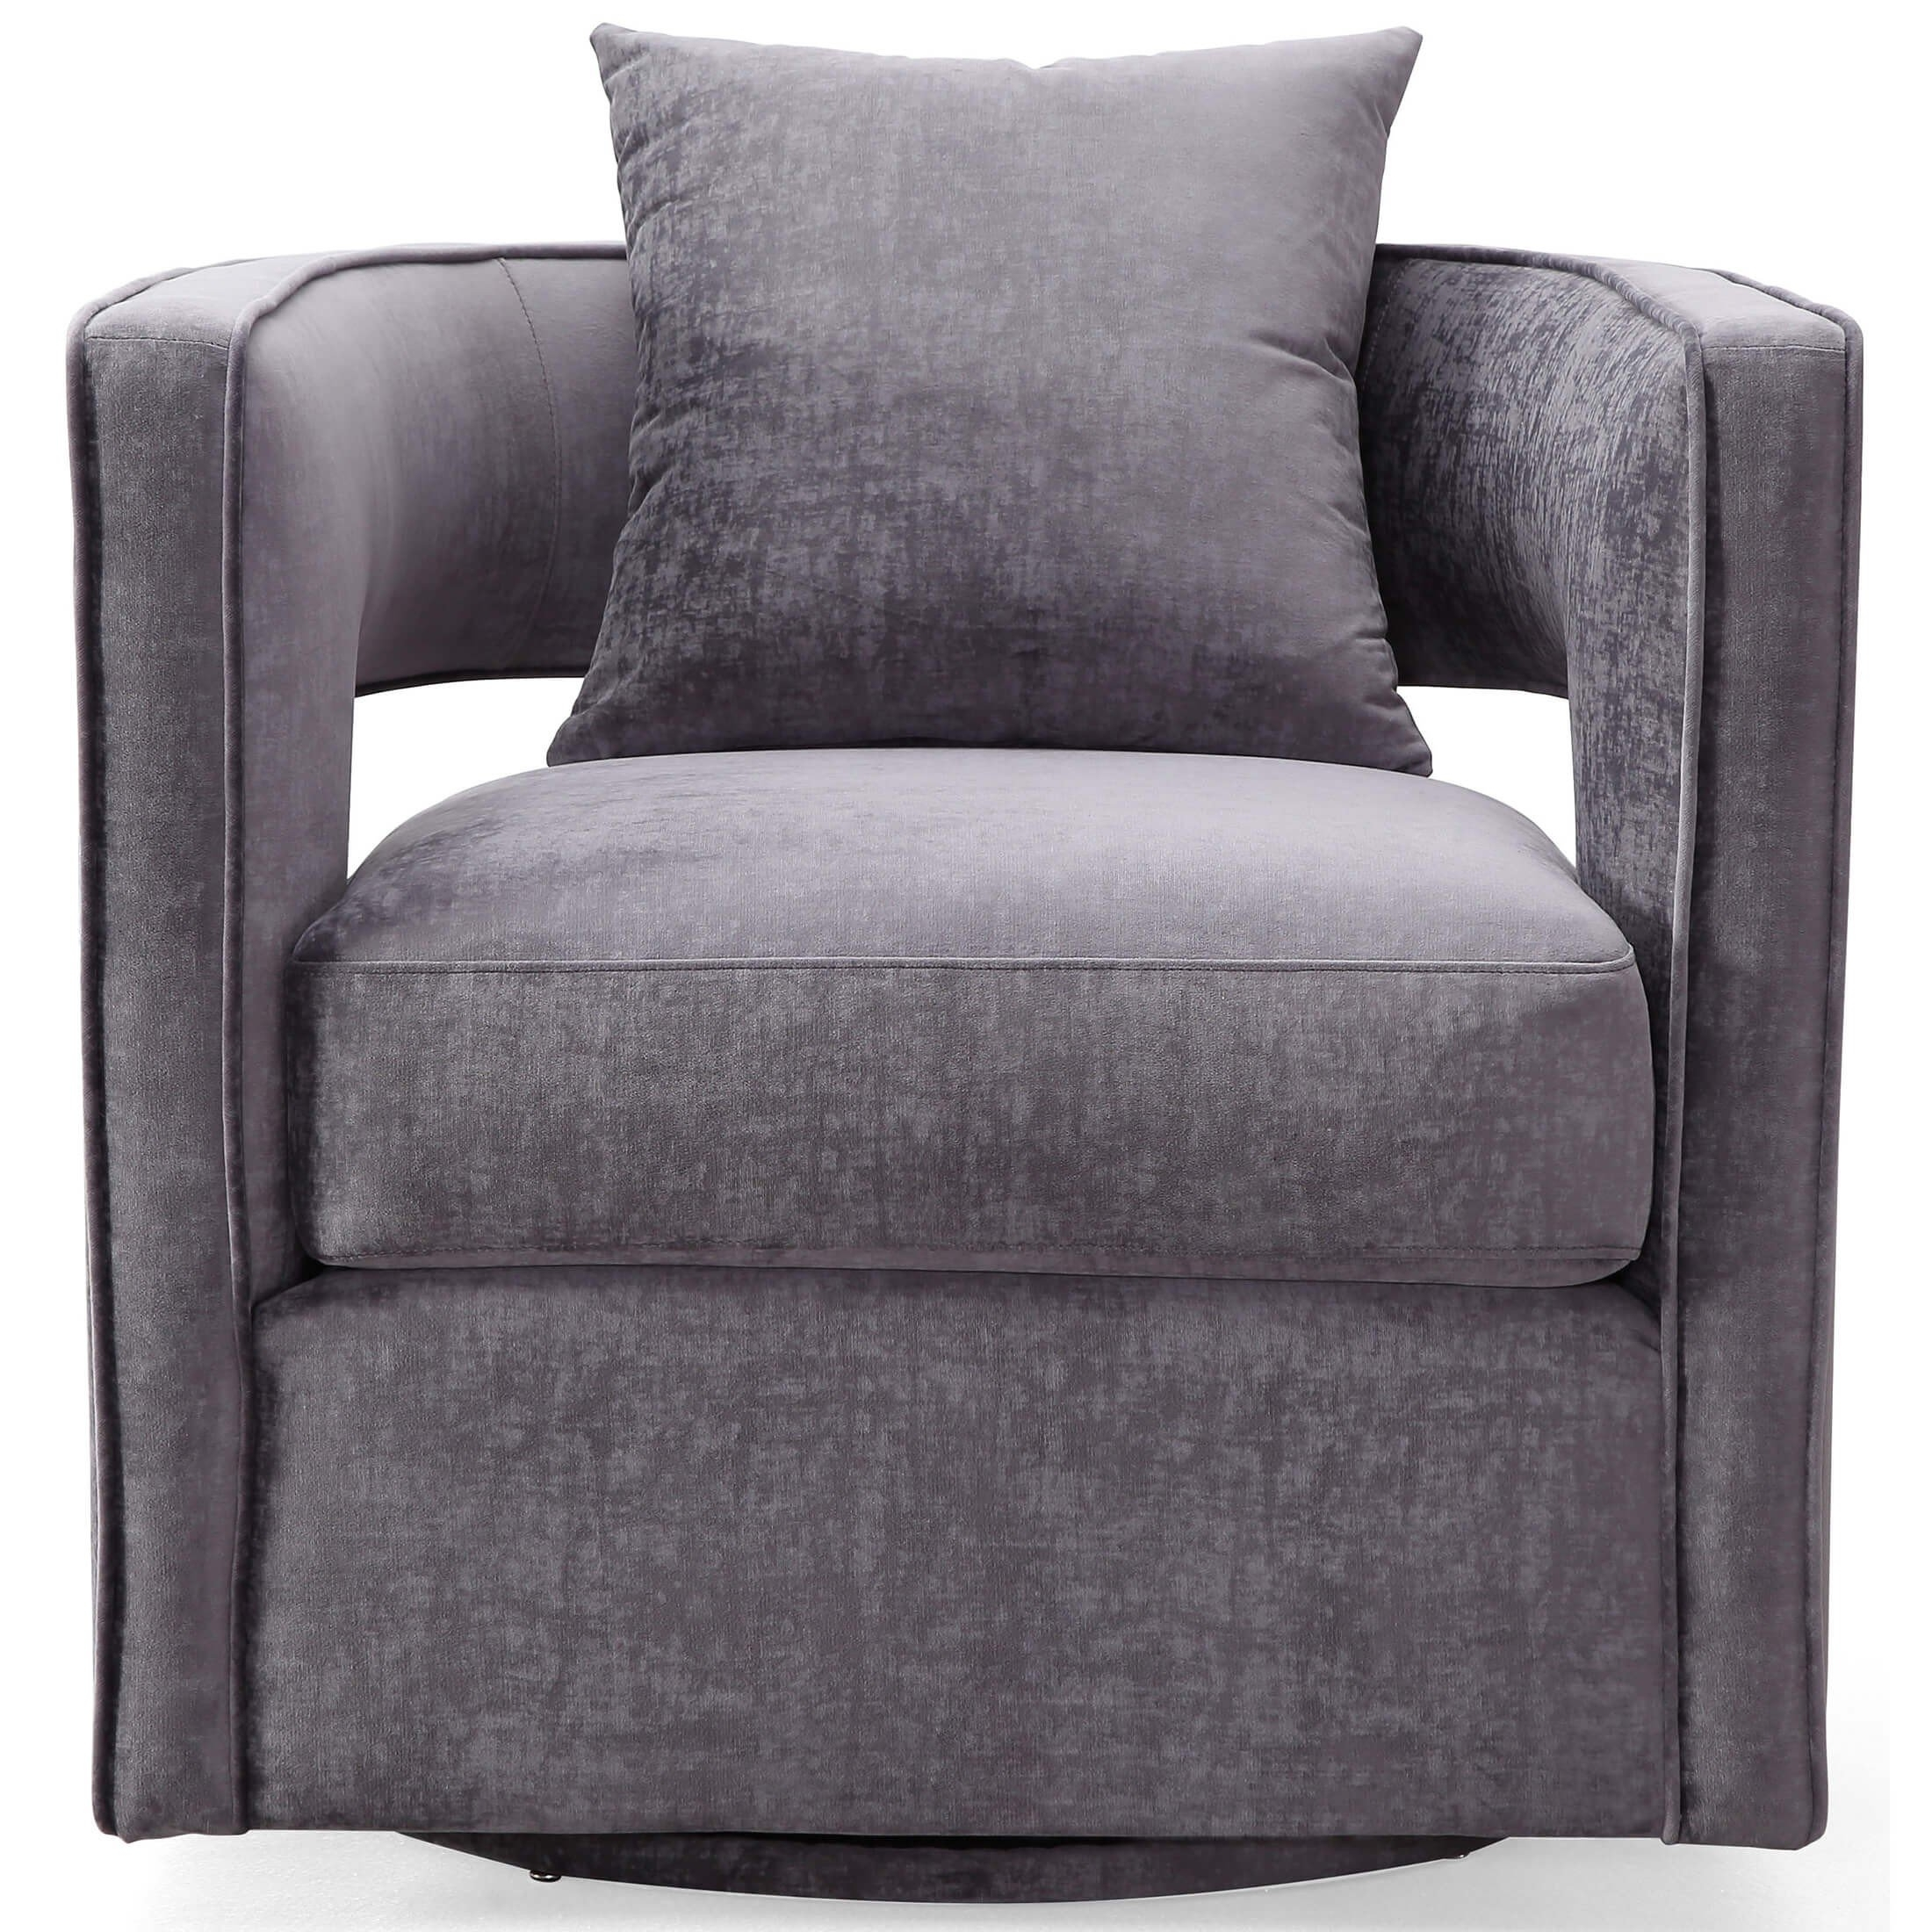 Oversized Circle Chair 10 Photos Sofas With Swivel Chair